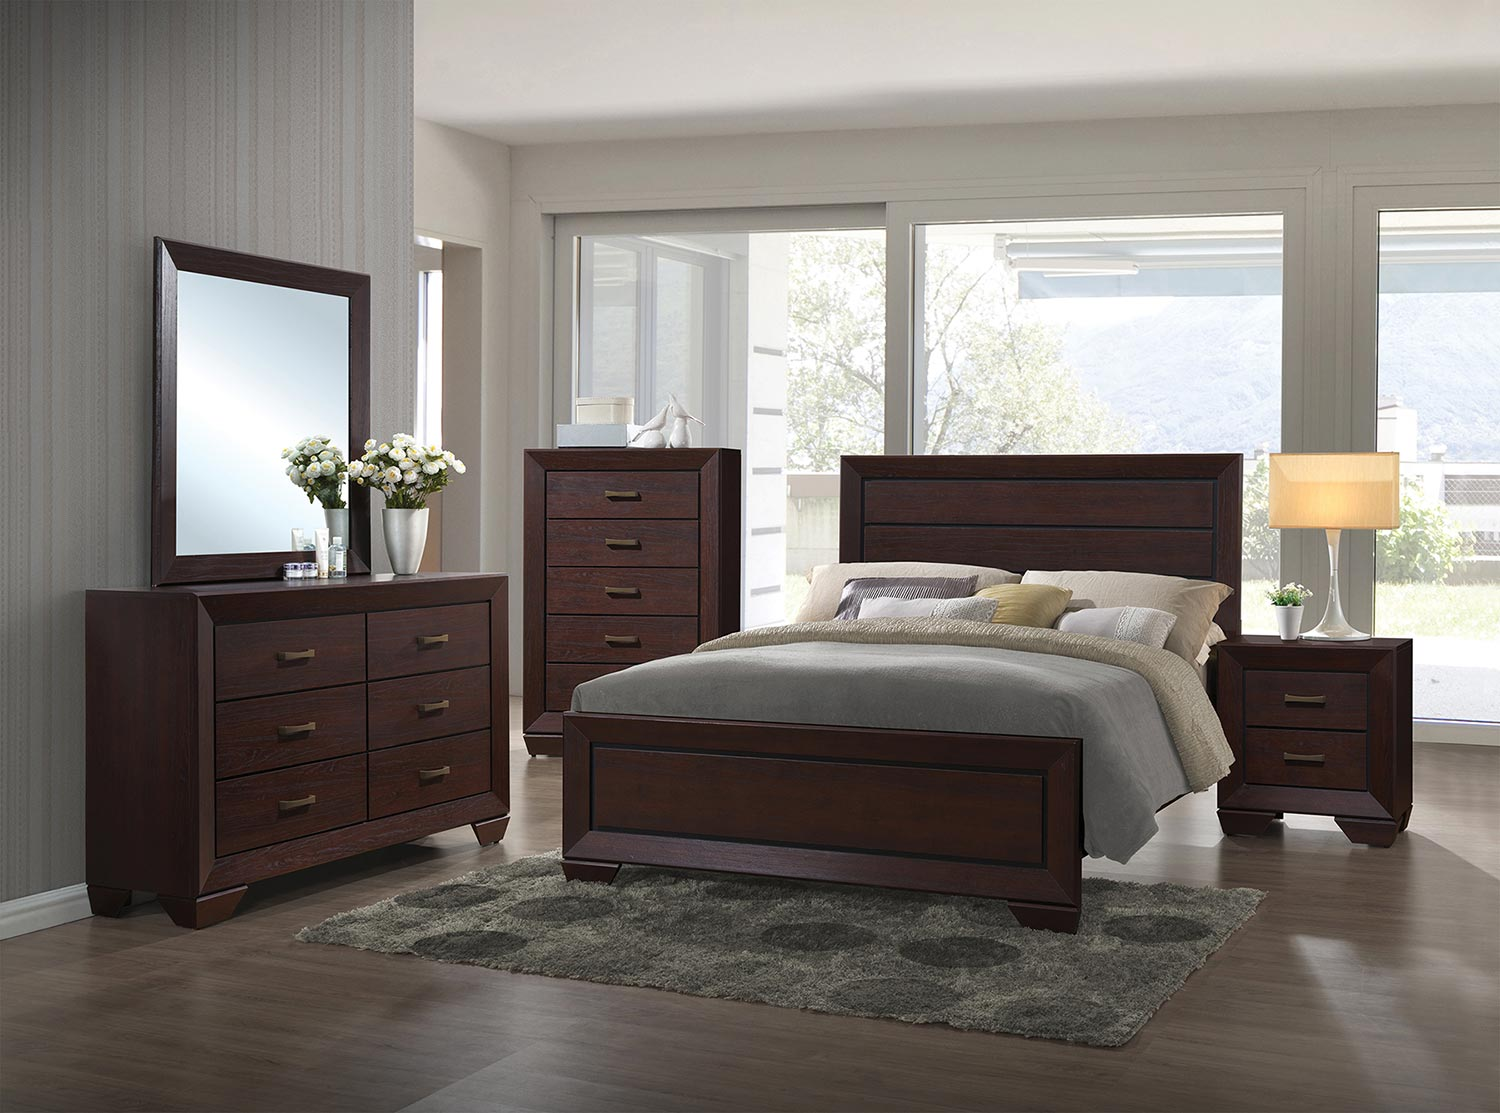 Coaster Fenbrook Bedroom Set - Dark Cocoa